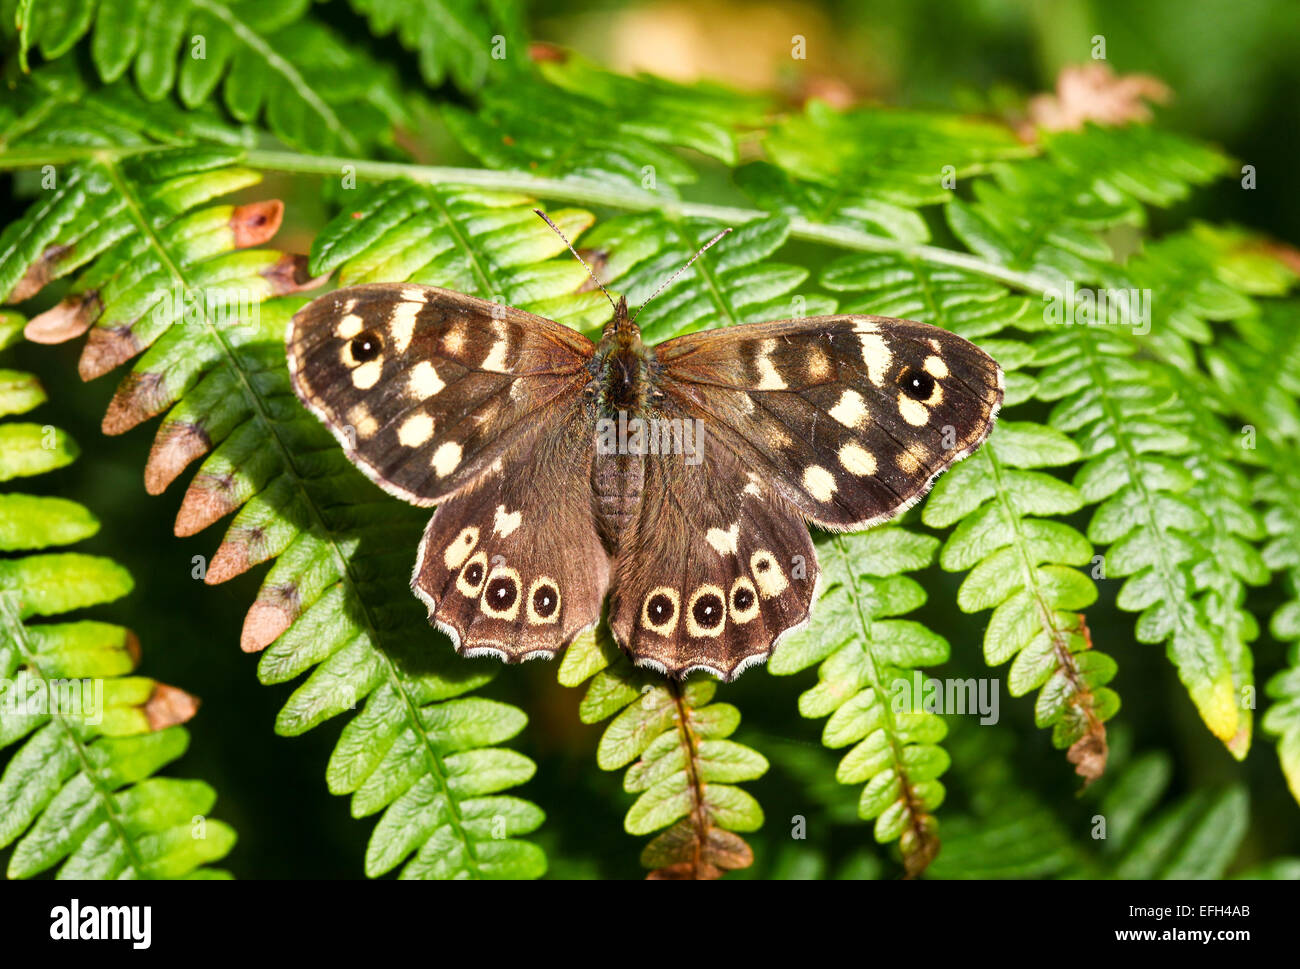 A close-up or macro shot of a Speckled Wood (Pararge aegeria) Butterfly - Stock Image